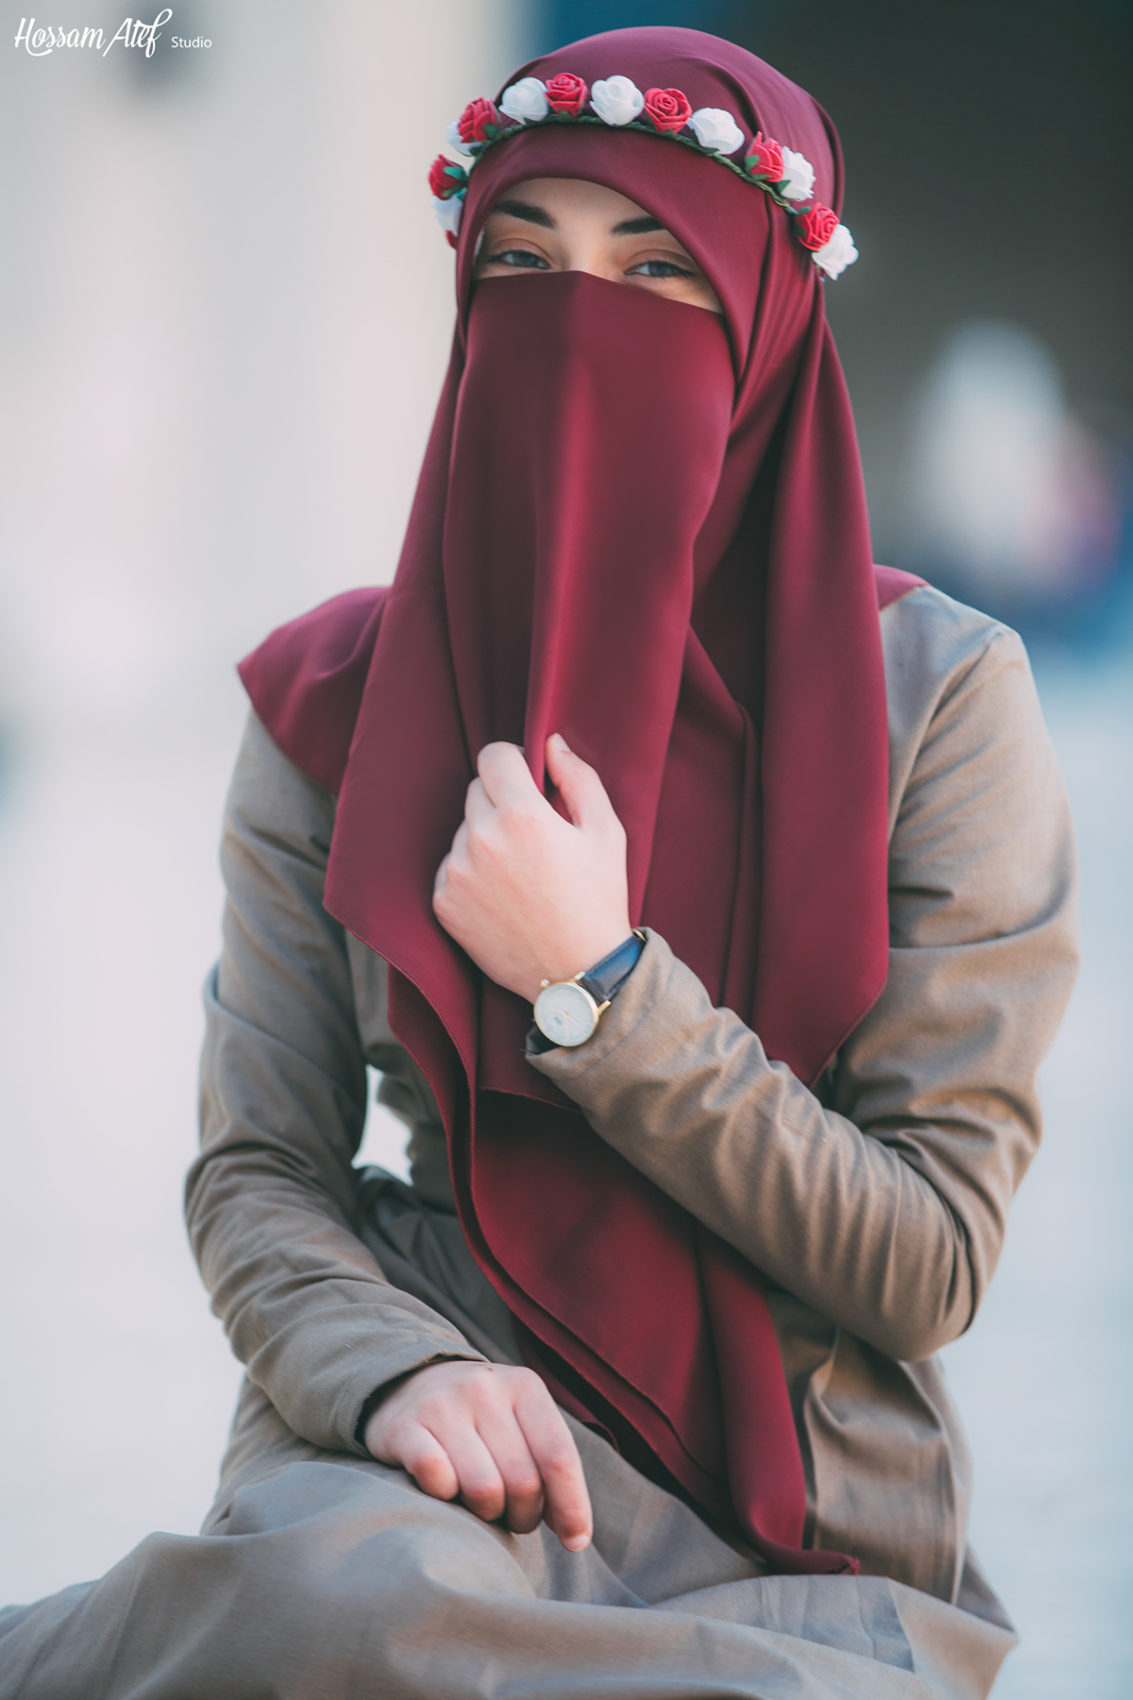 How to Become a Good Muslim Girl